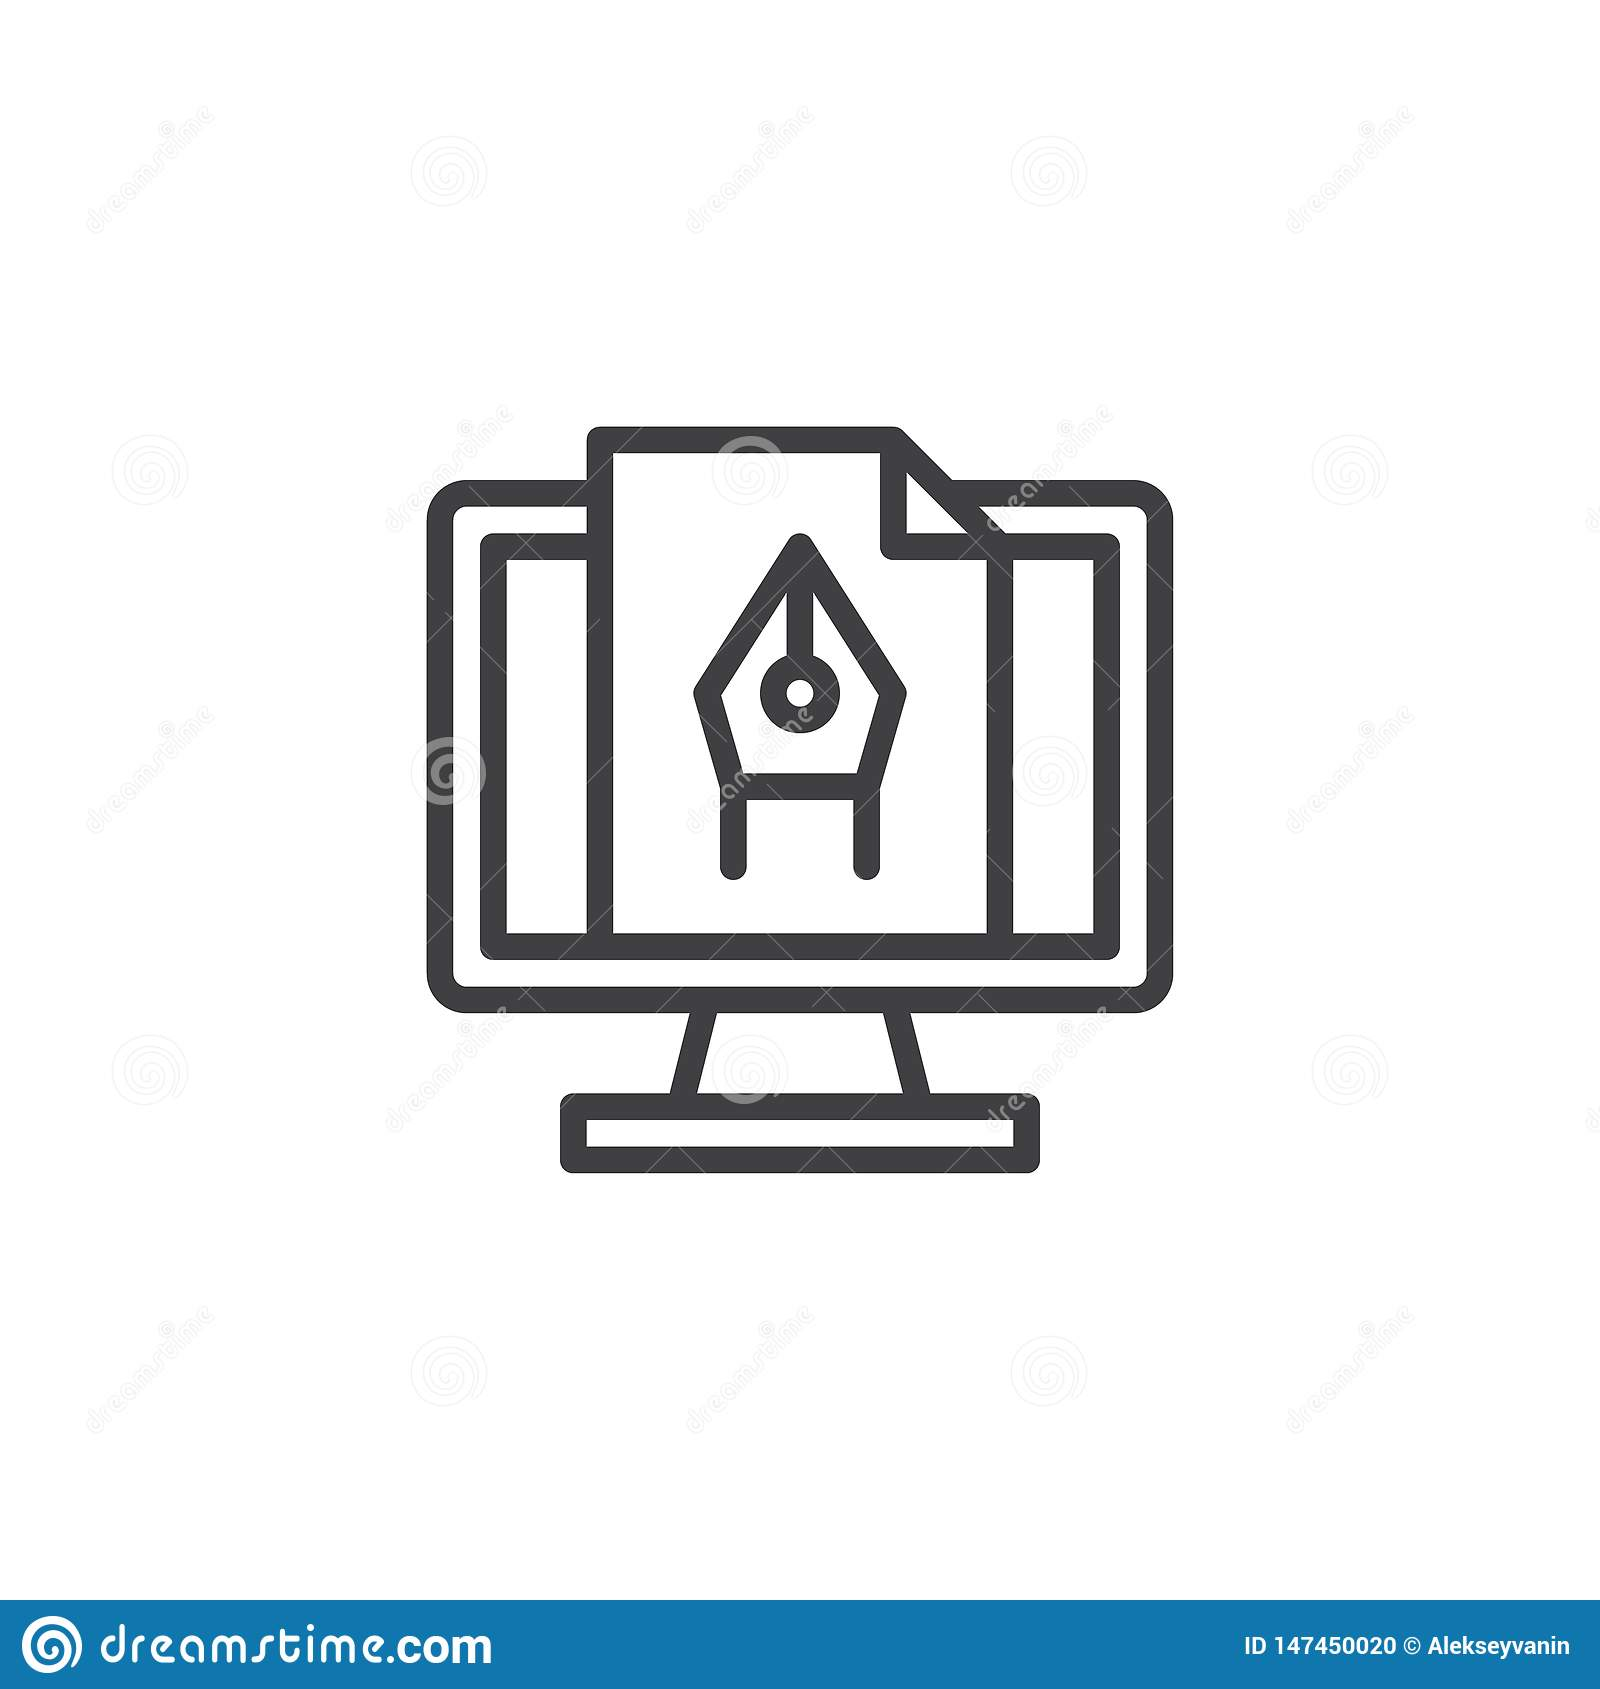 Computer graphics line icon